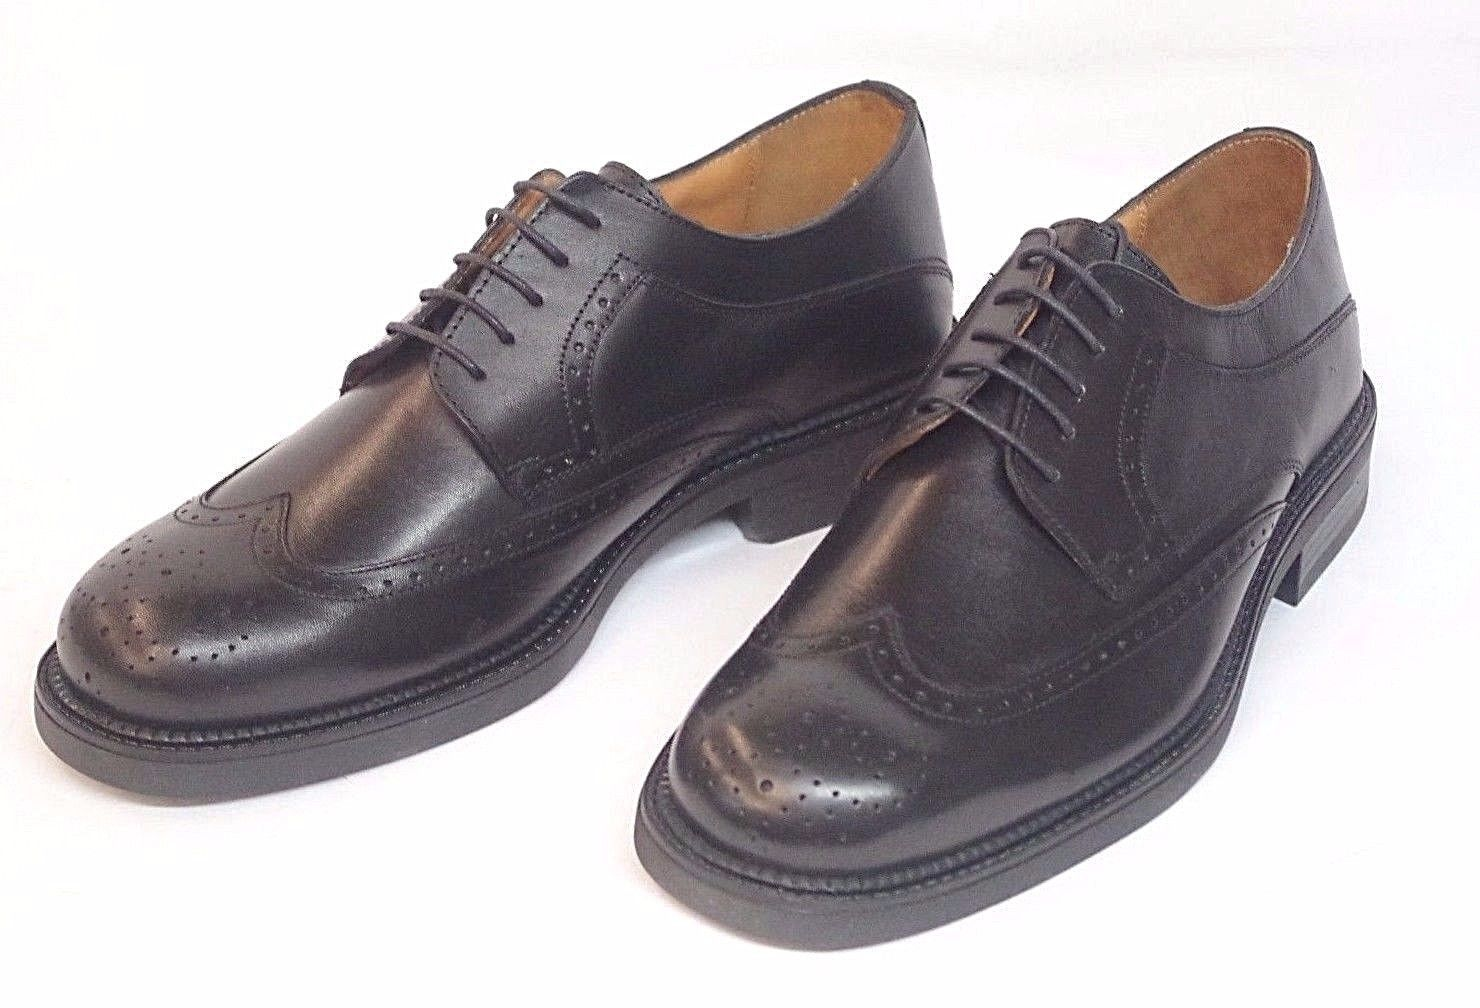 Georgio Brutini Private Collection Black Basket Weave Men's Size 12 M Shoes